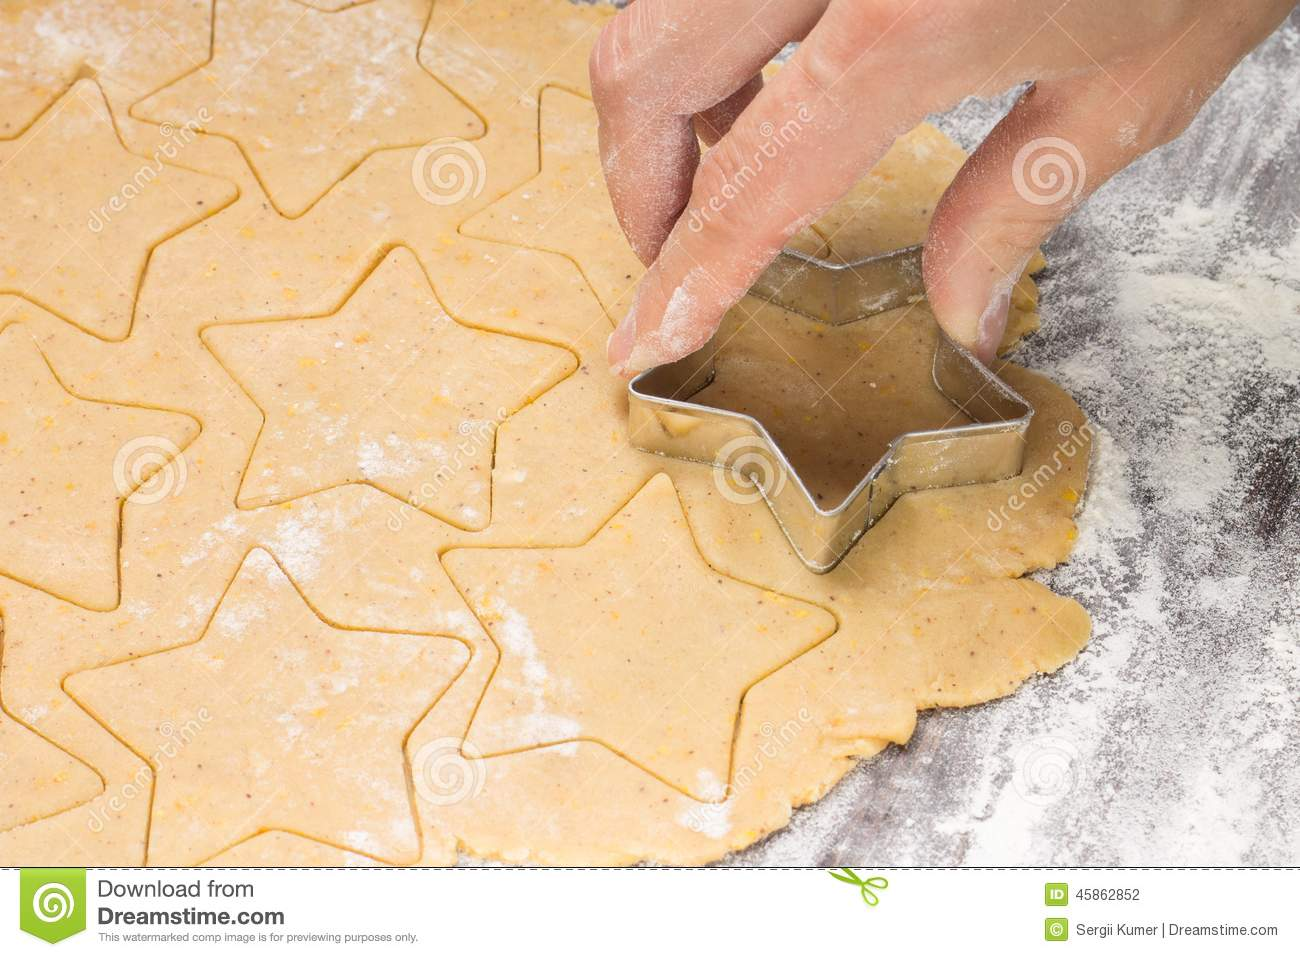 Making ginger bread christmas cookies with metal cutter. Ginger dough and flour